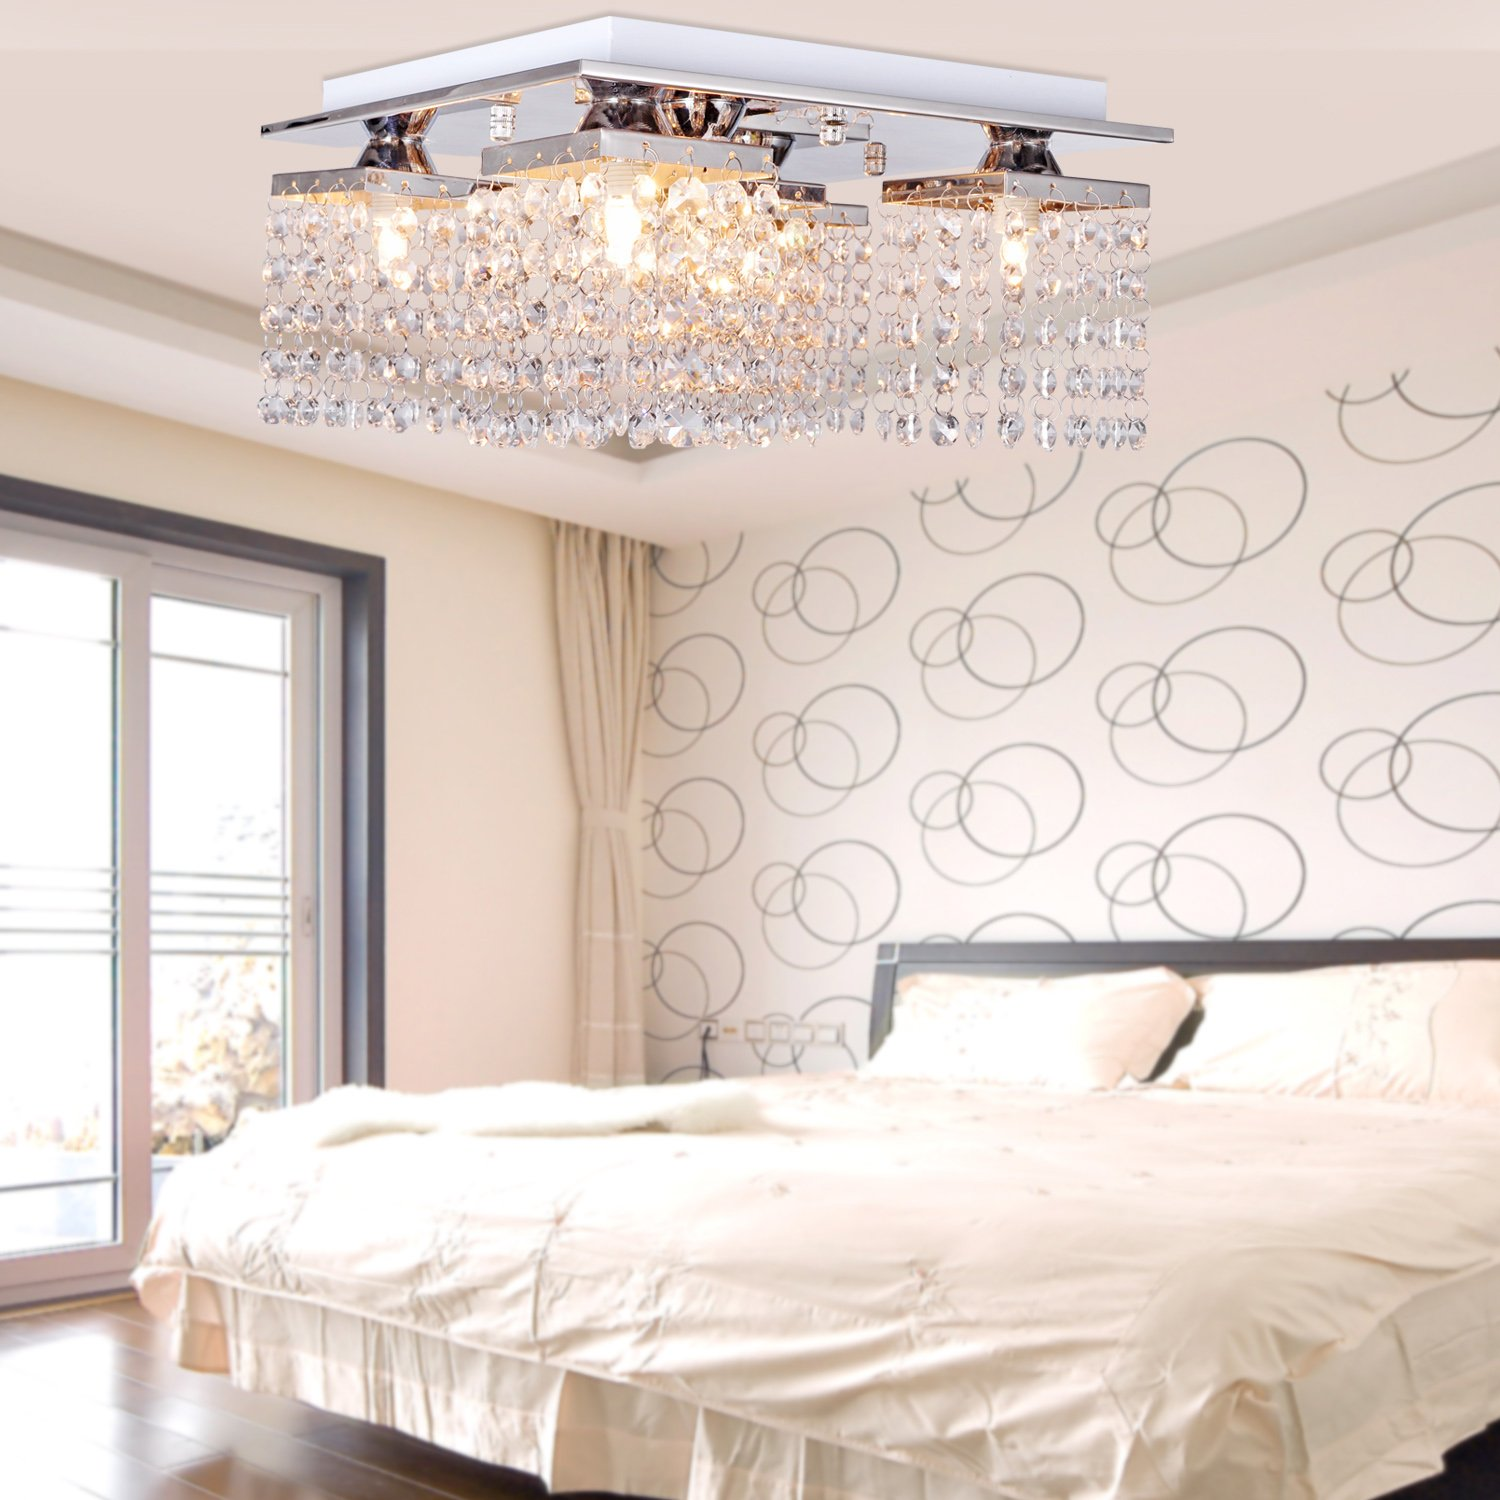 Y&LModern/Contemporary Crystal Ceiling Light with 5 lights Chrome Flush Mount H=8'' W=12'' L=12''